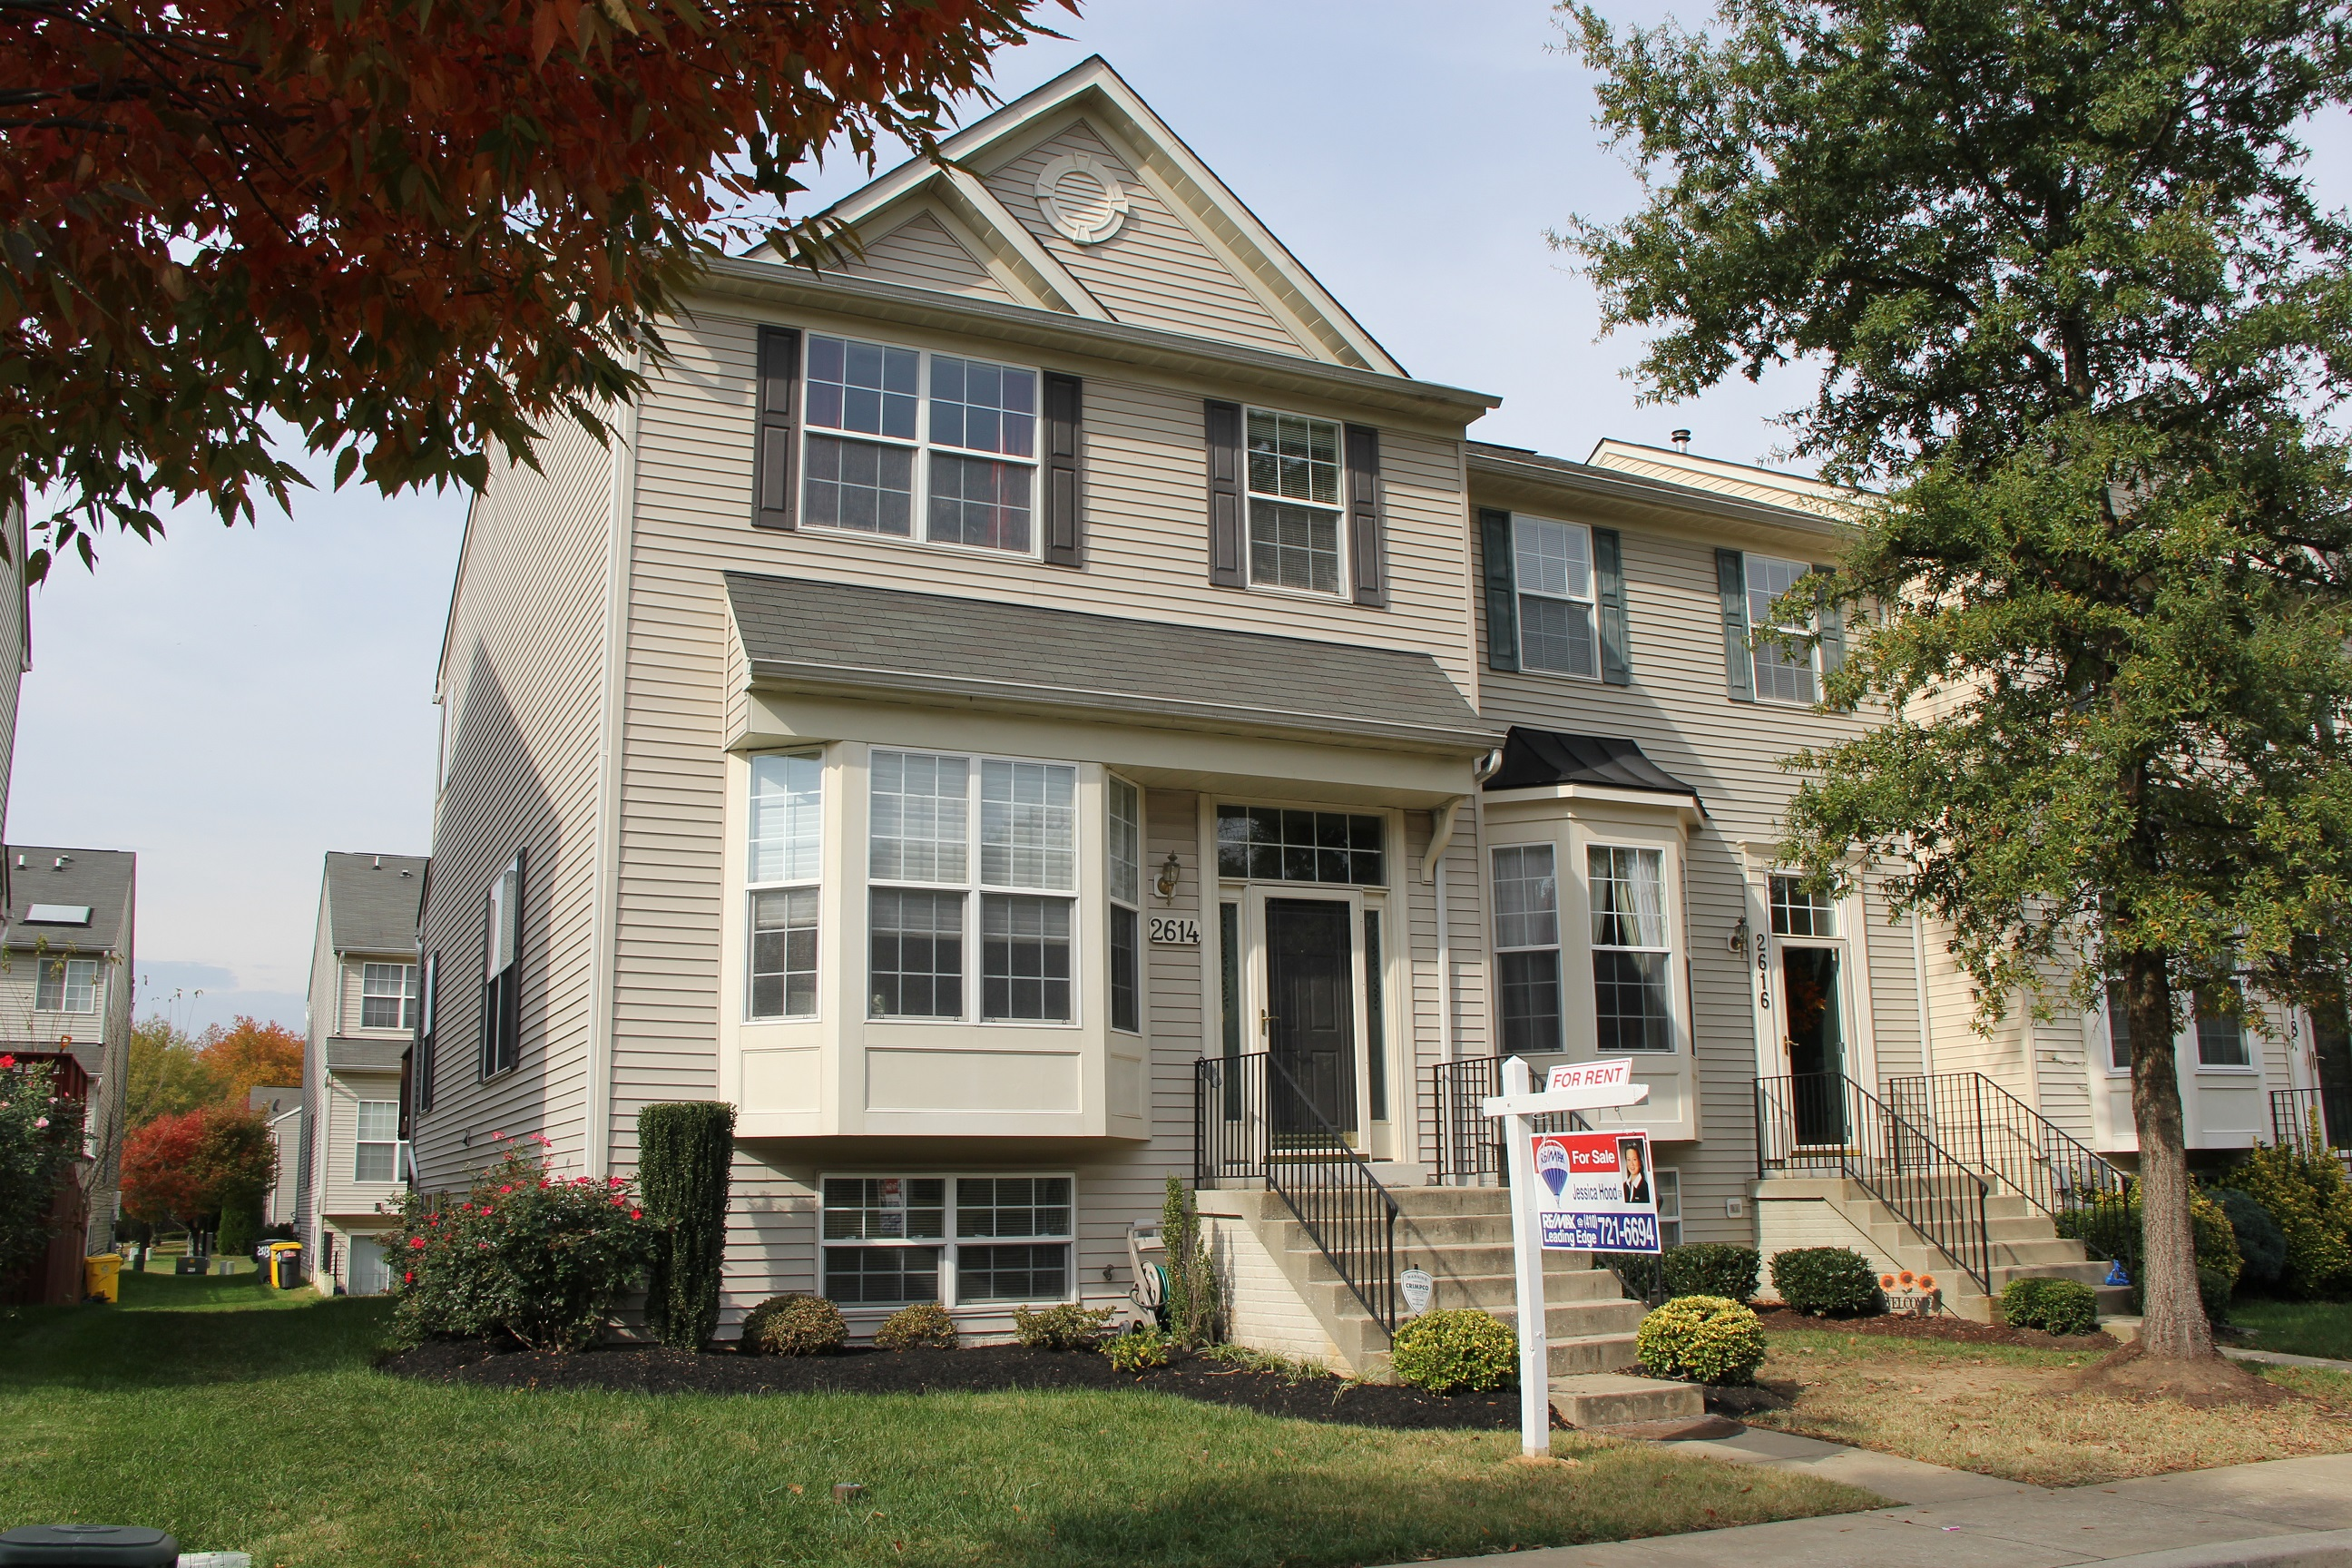 Home for rent in Seven Oaks Odenton near Fort Meade